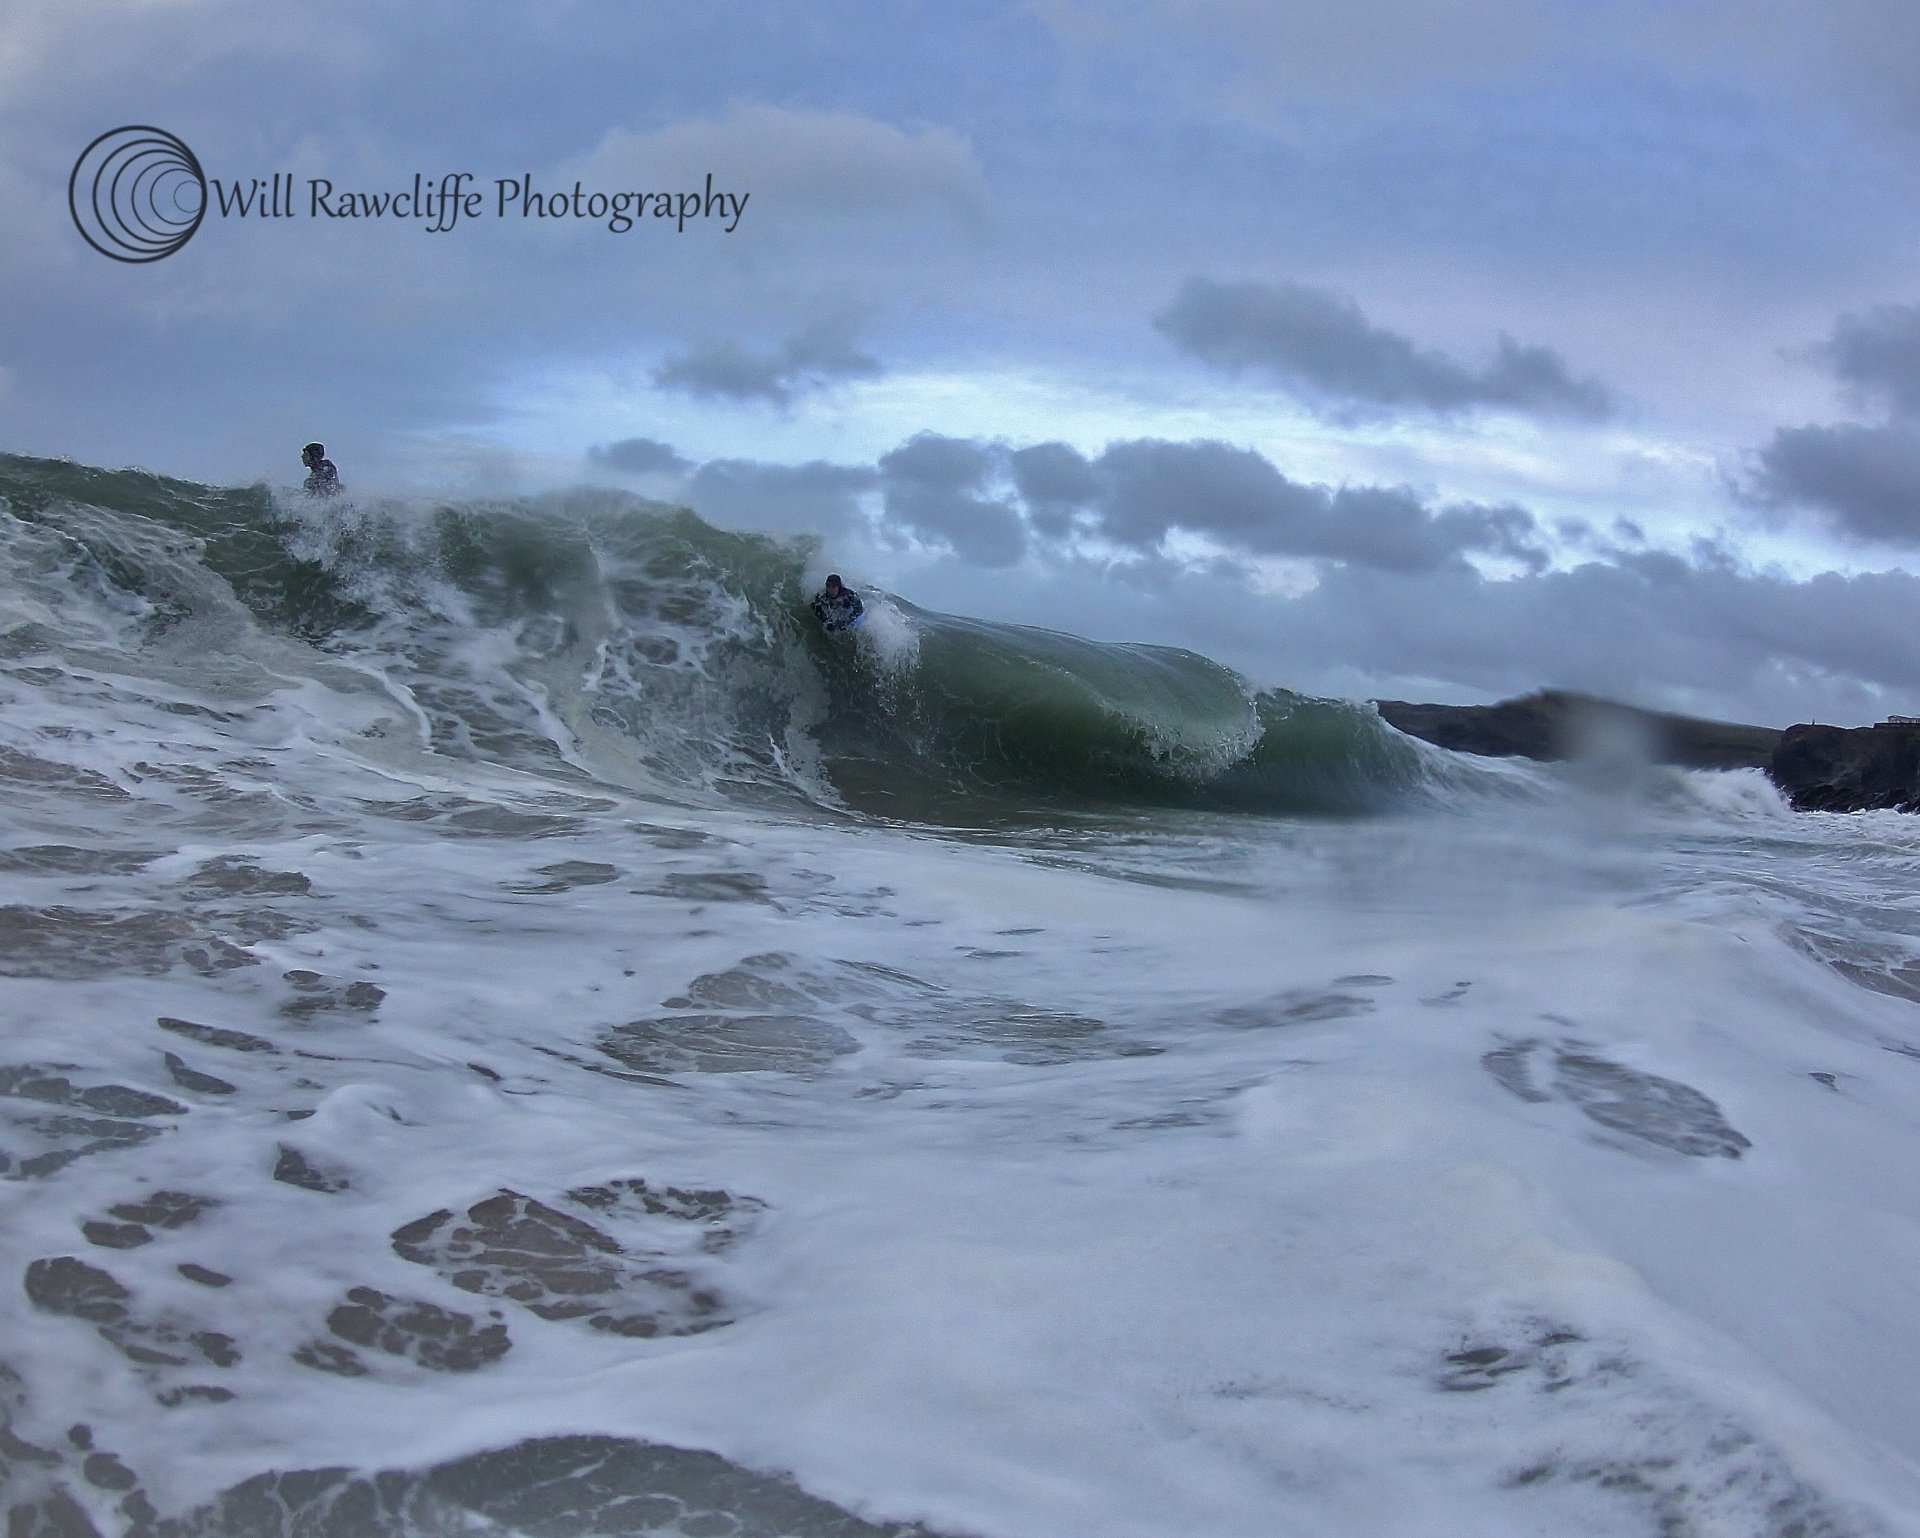 willrawcliffe's photo of Harlyn